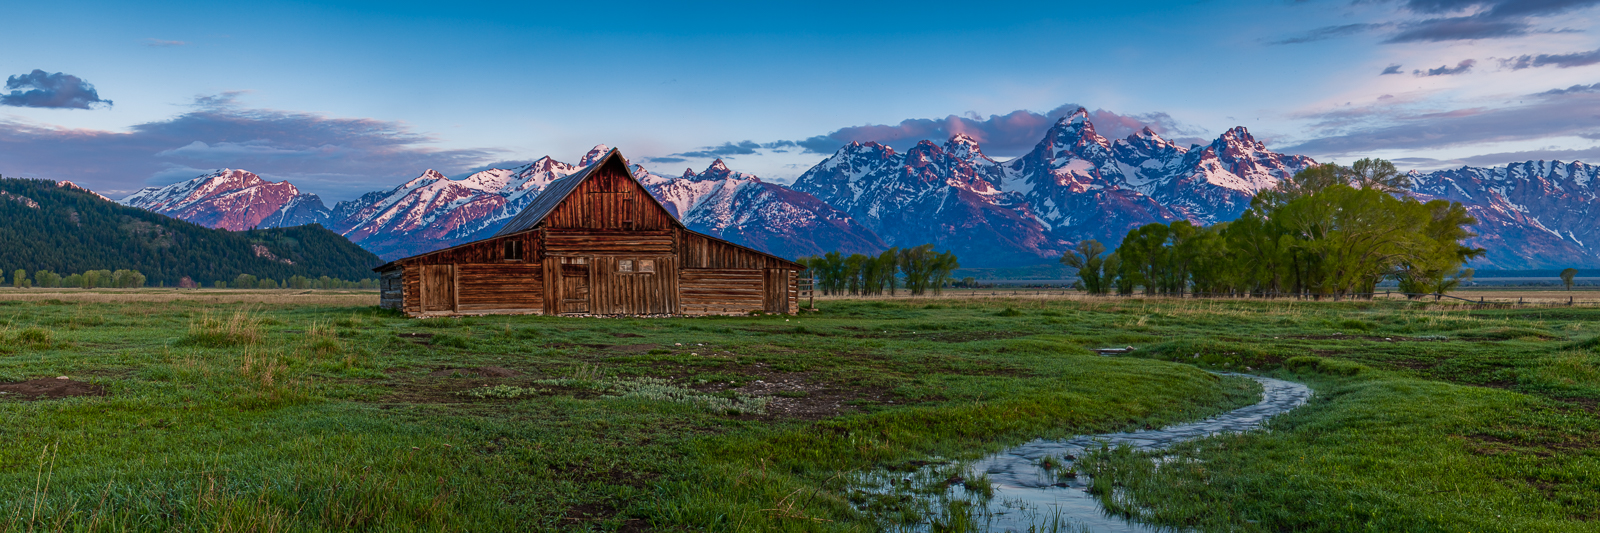 Mormon Row First Light,Grand Teton National Park, Wyoming,light,panoramic,horizontal,water, photo